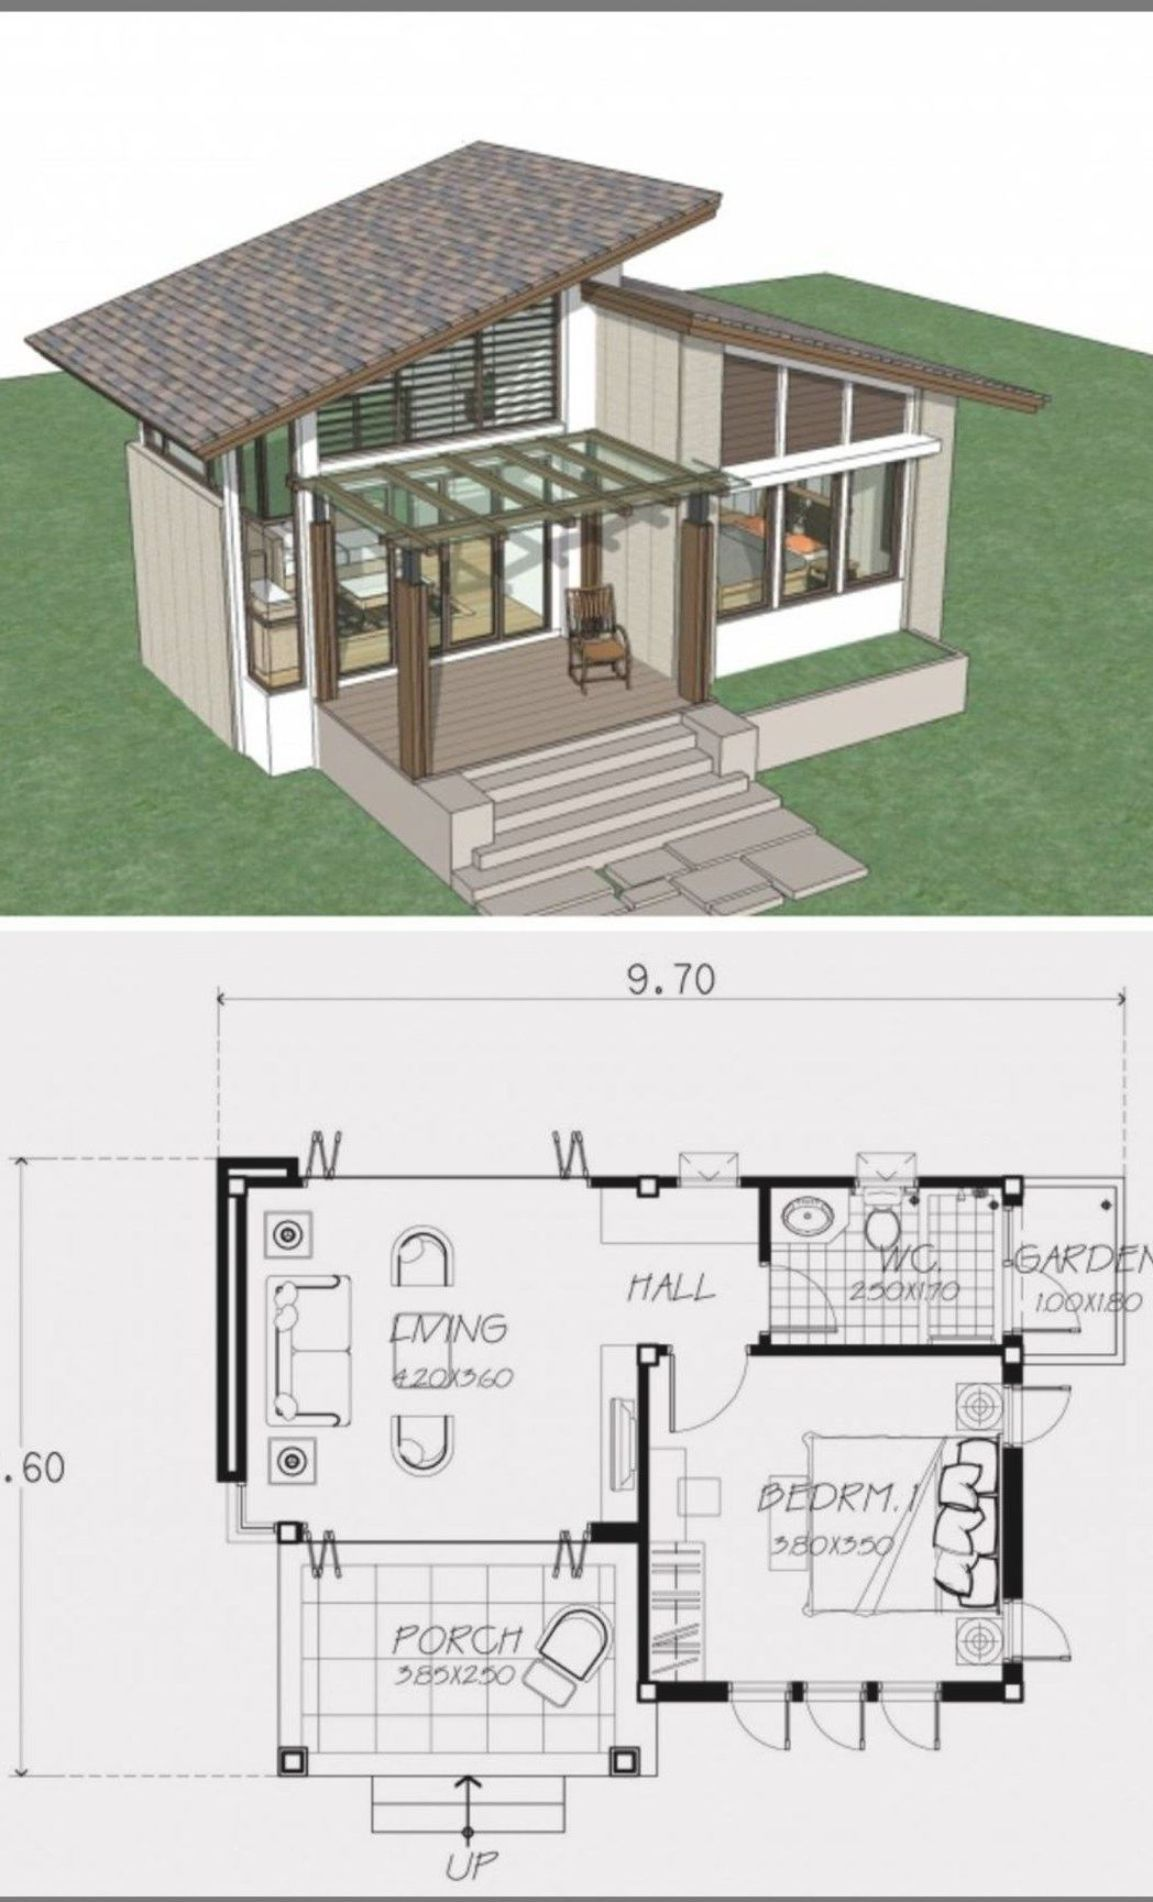 Small Home Design Plan 9x6 6m With One Bedroom Home Design With Plansearch Small House Style Small House Design Plans One Bedroom House